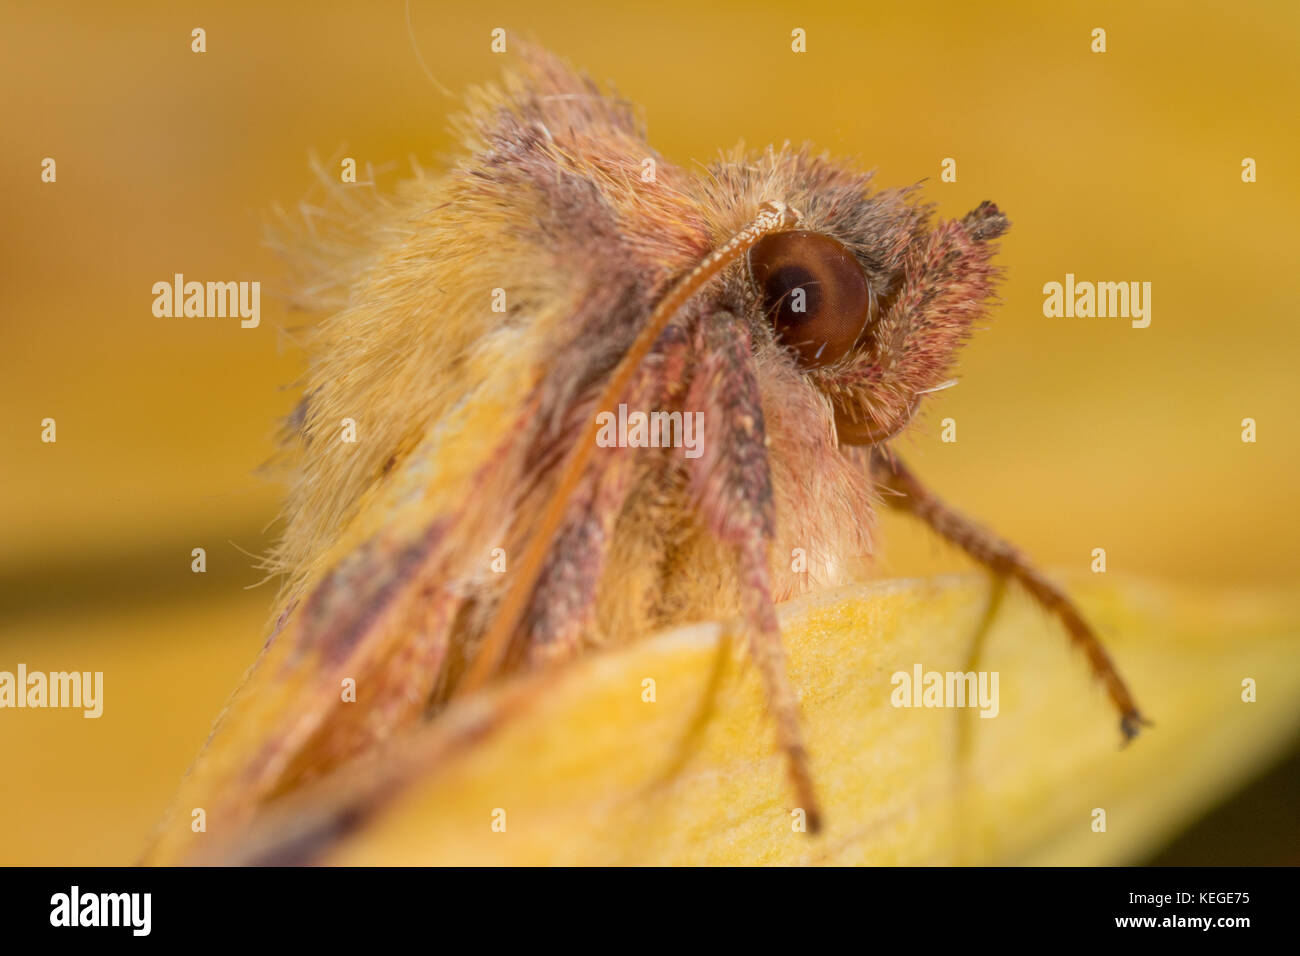 A rather goofy-looking pink-barred sallow - macro portrait of this British autumnal garden moth. - Stock Image